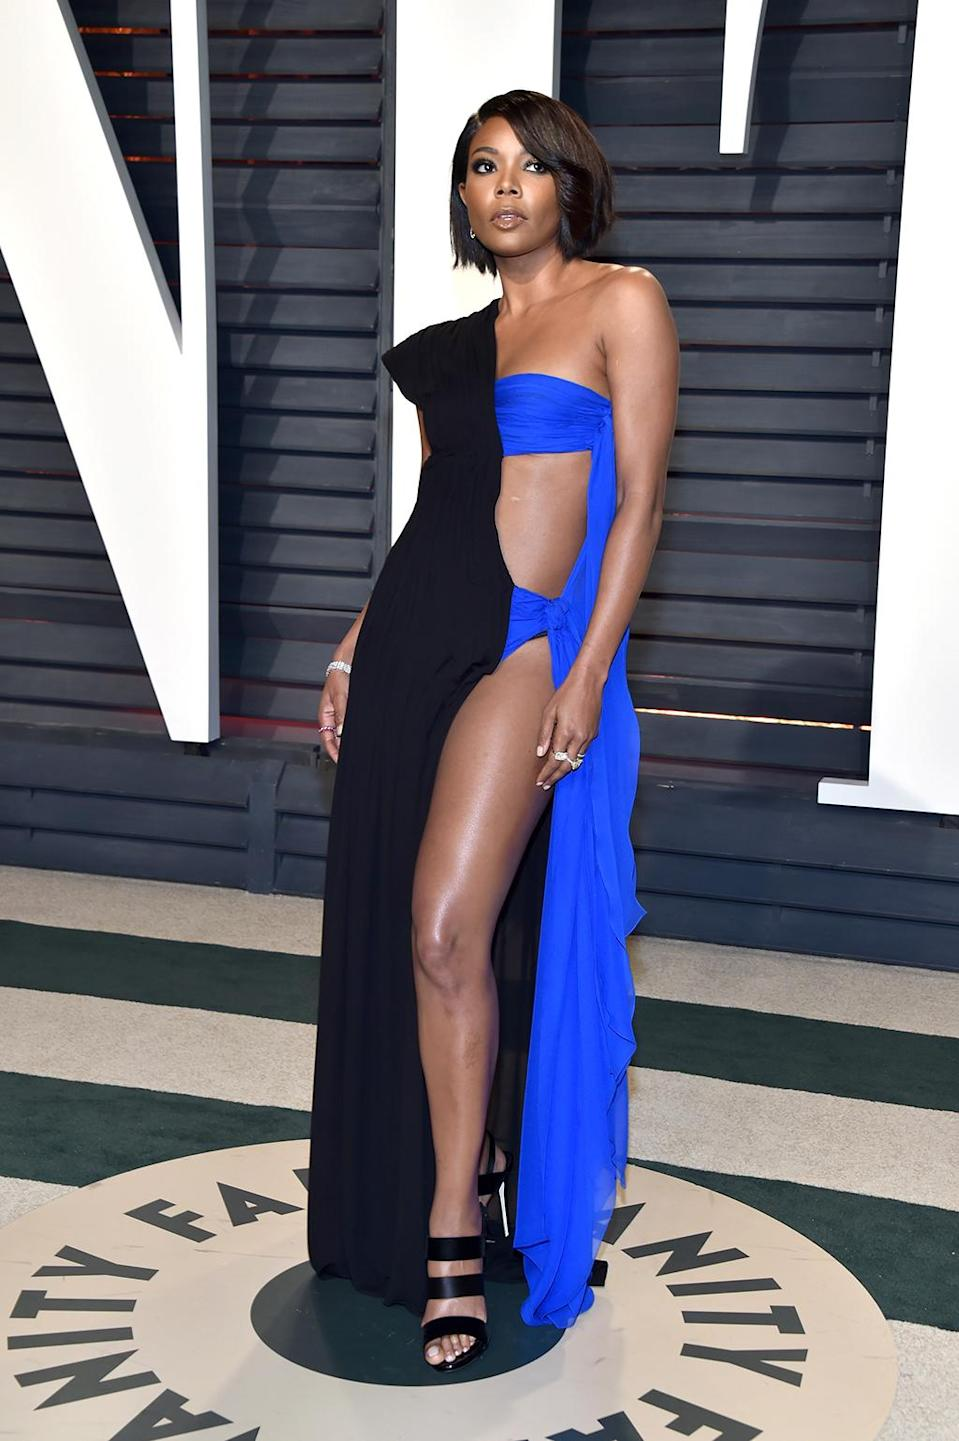 <p>Gabrielle Union attends the 2017 Vanity Fair Oscar Party hosted by Graydon Carter at Wallis Annenberg Center for the Performing Arts on February 26, 2017 in Beverly Hills, California. (Photo by Pascal Le Segretain/Getty Images) </p>